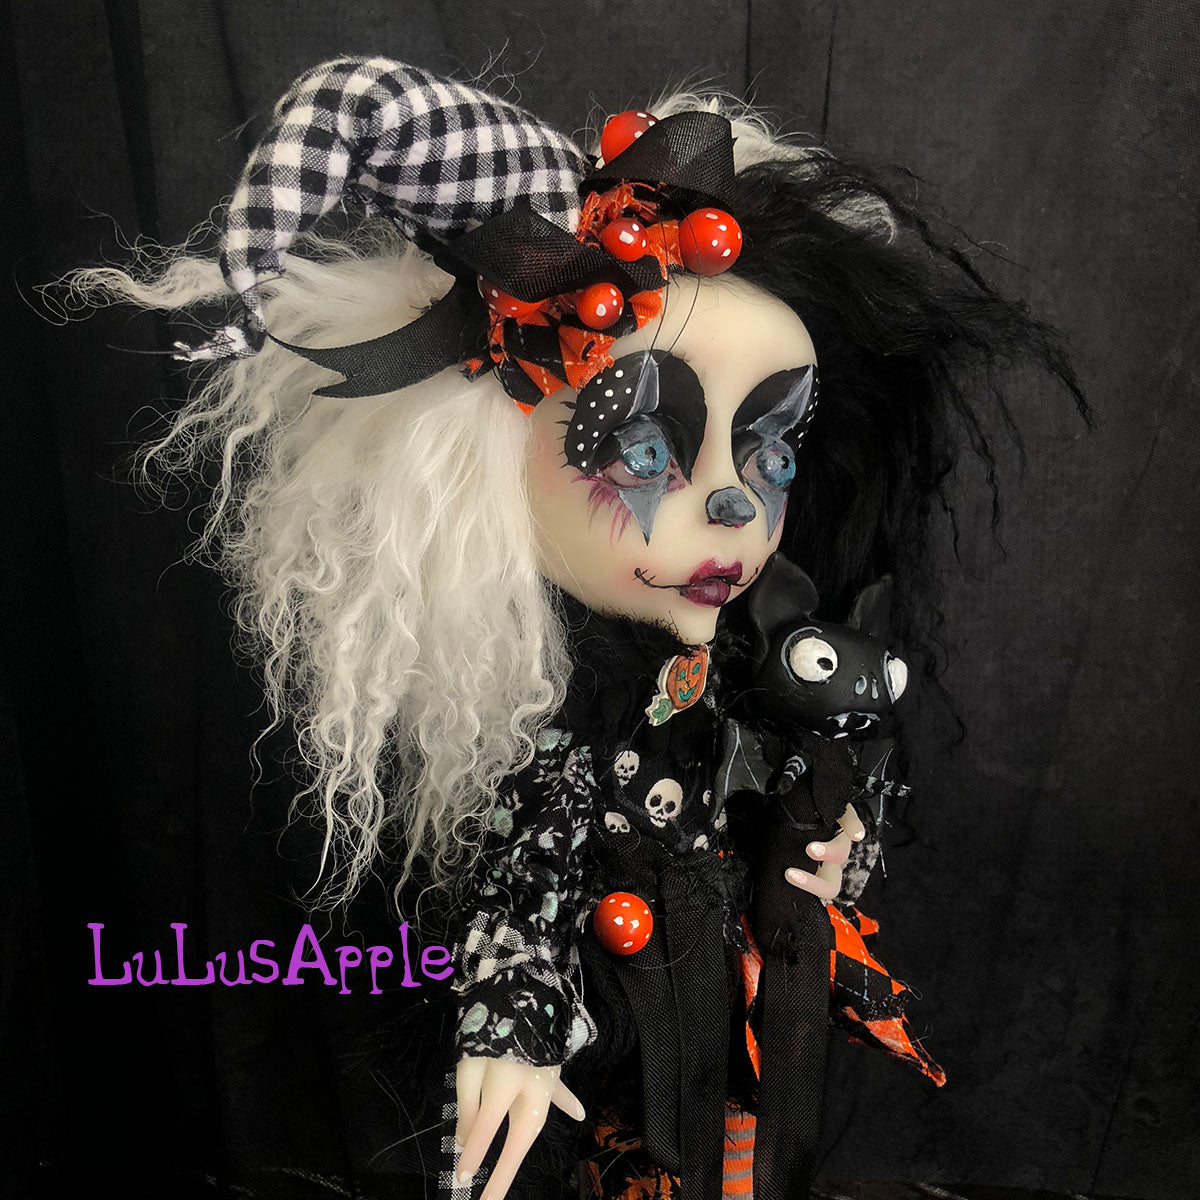 Bramble Poupee Victorian Halloween Dark Circus OOAK Art Doll  LuLusApple